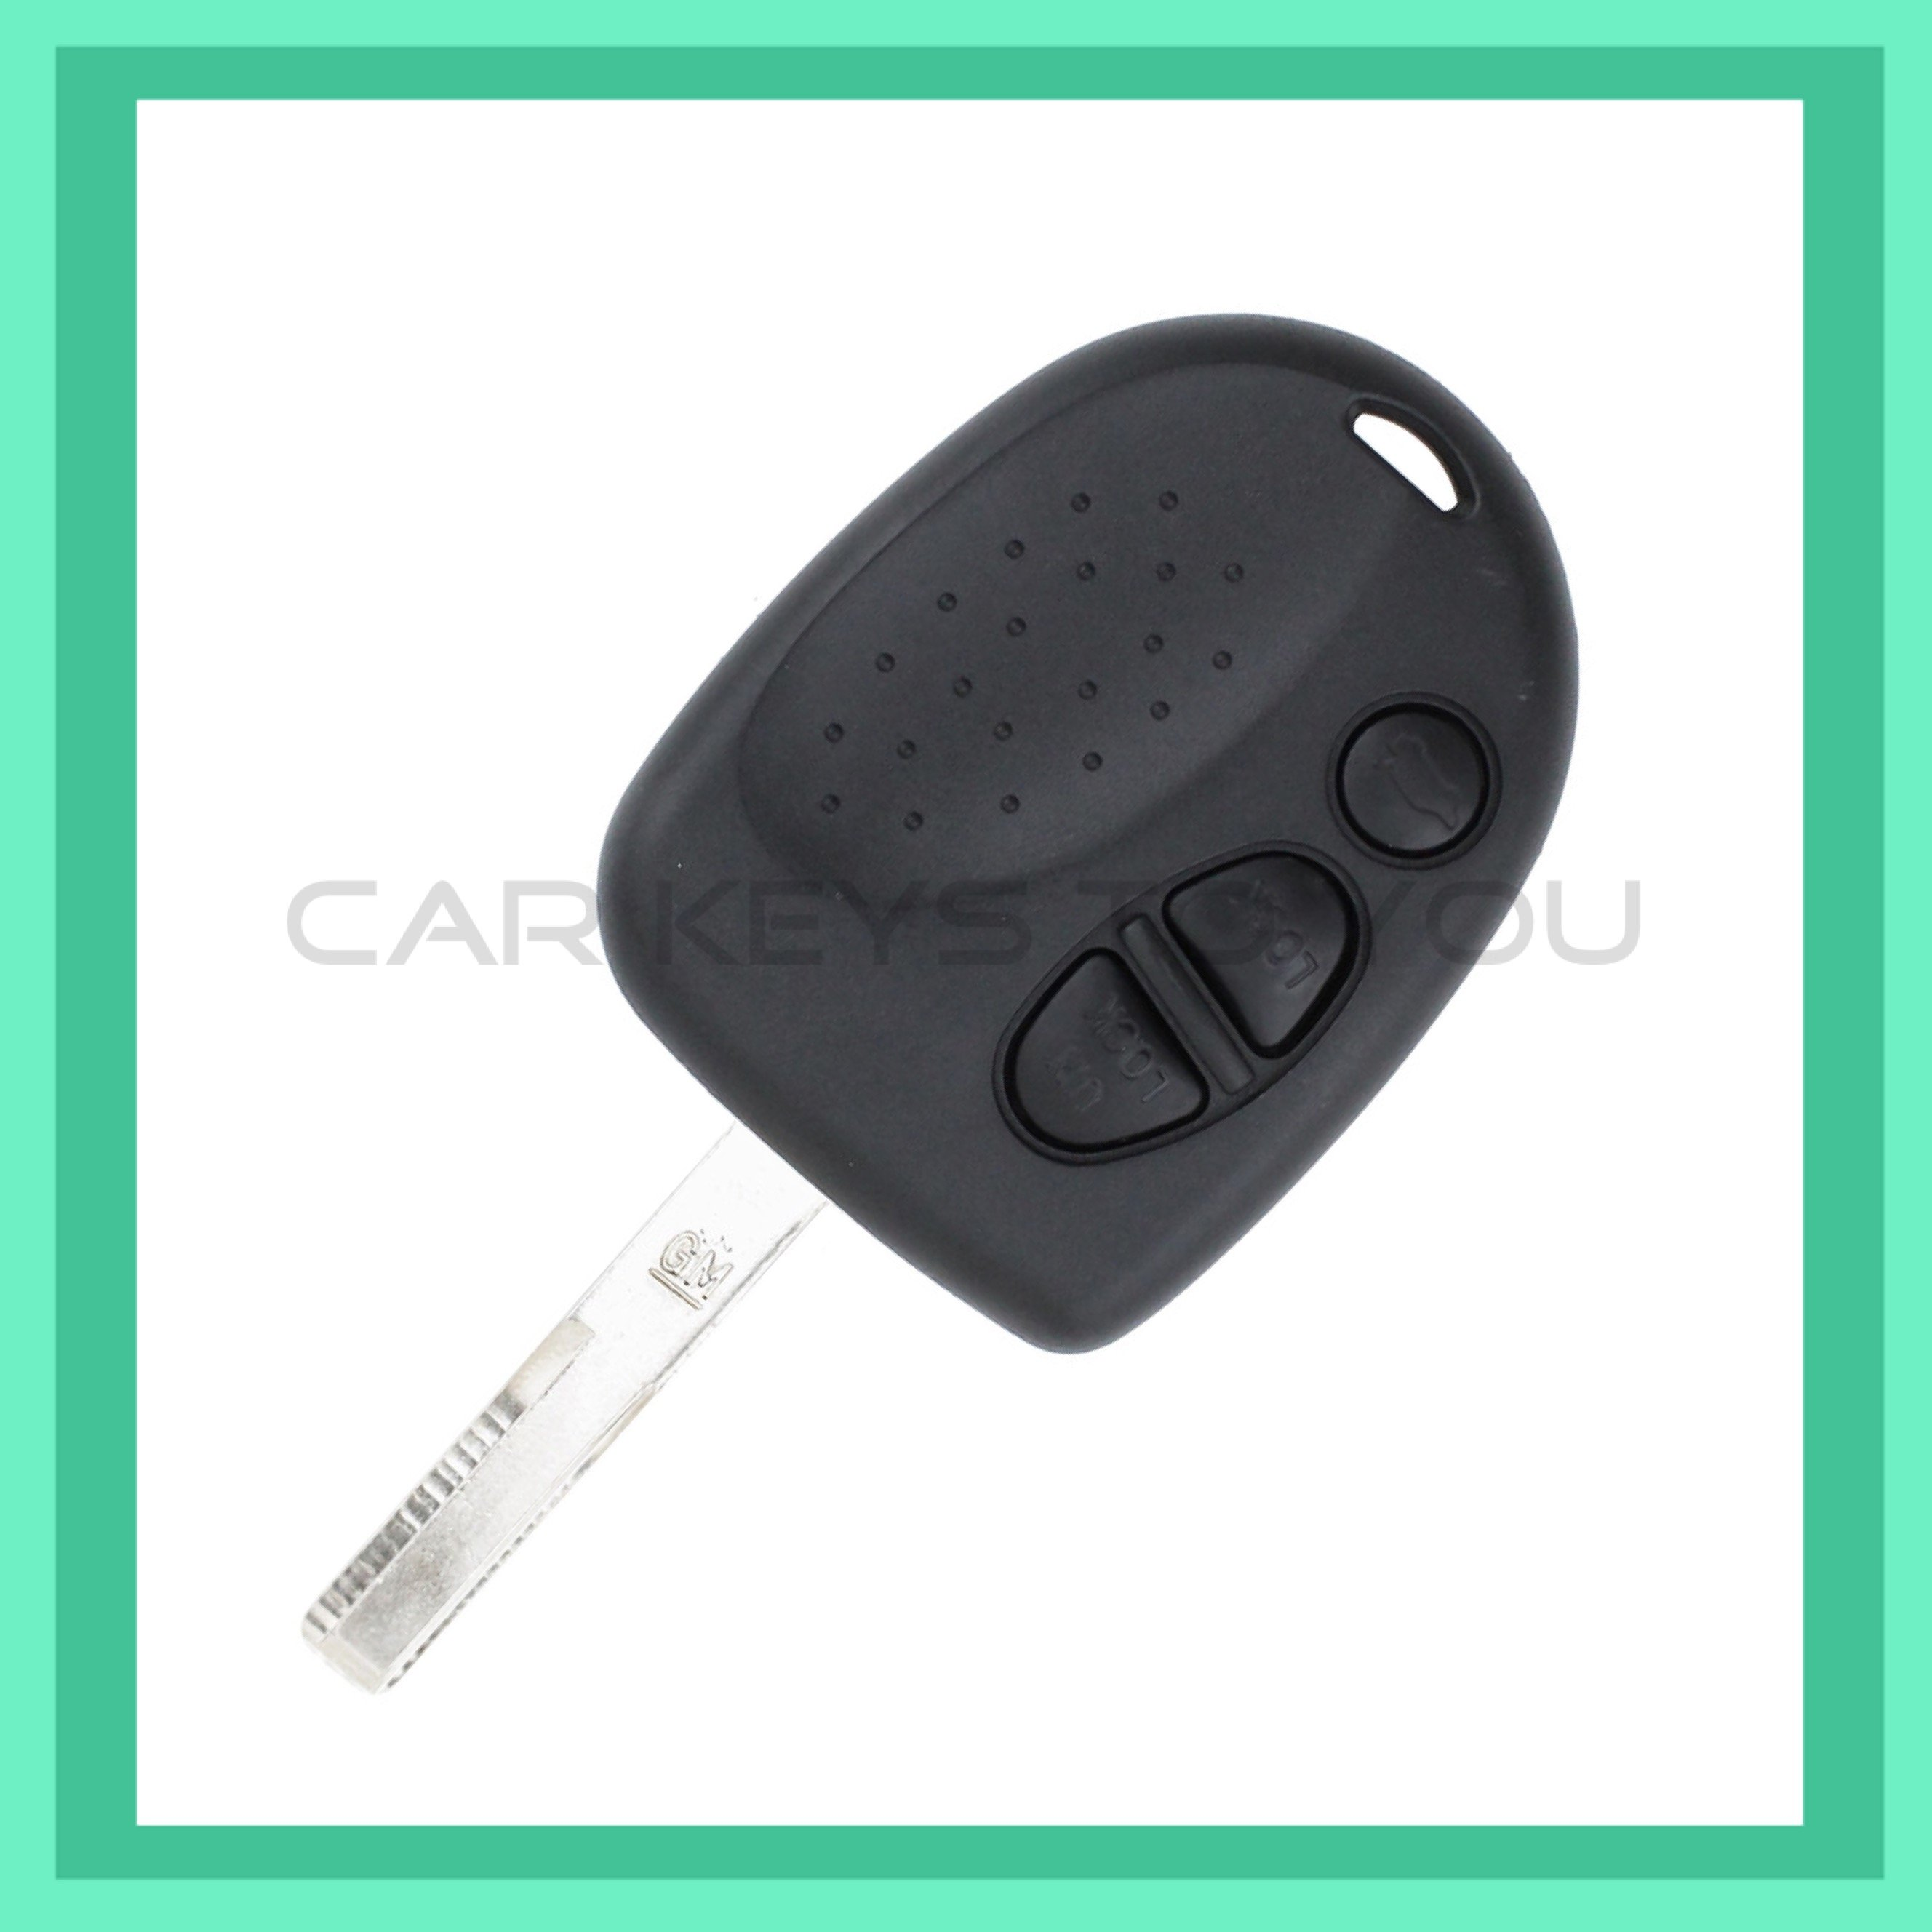 Commodore VY-VZ Series 2 Remote Car Key, 2002 - 2006